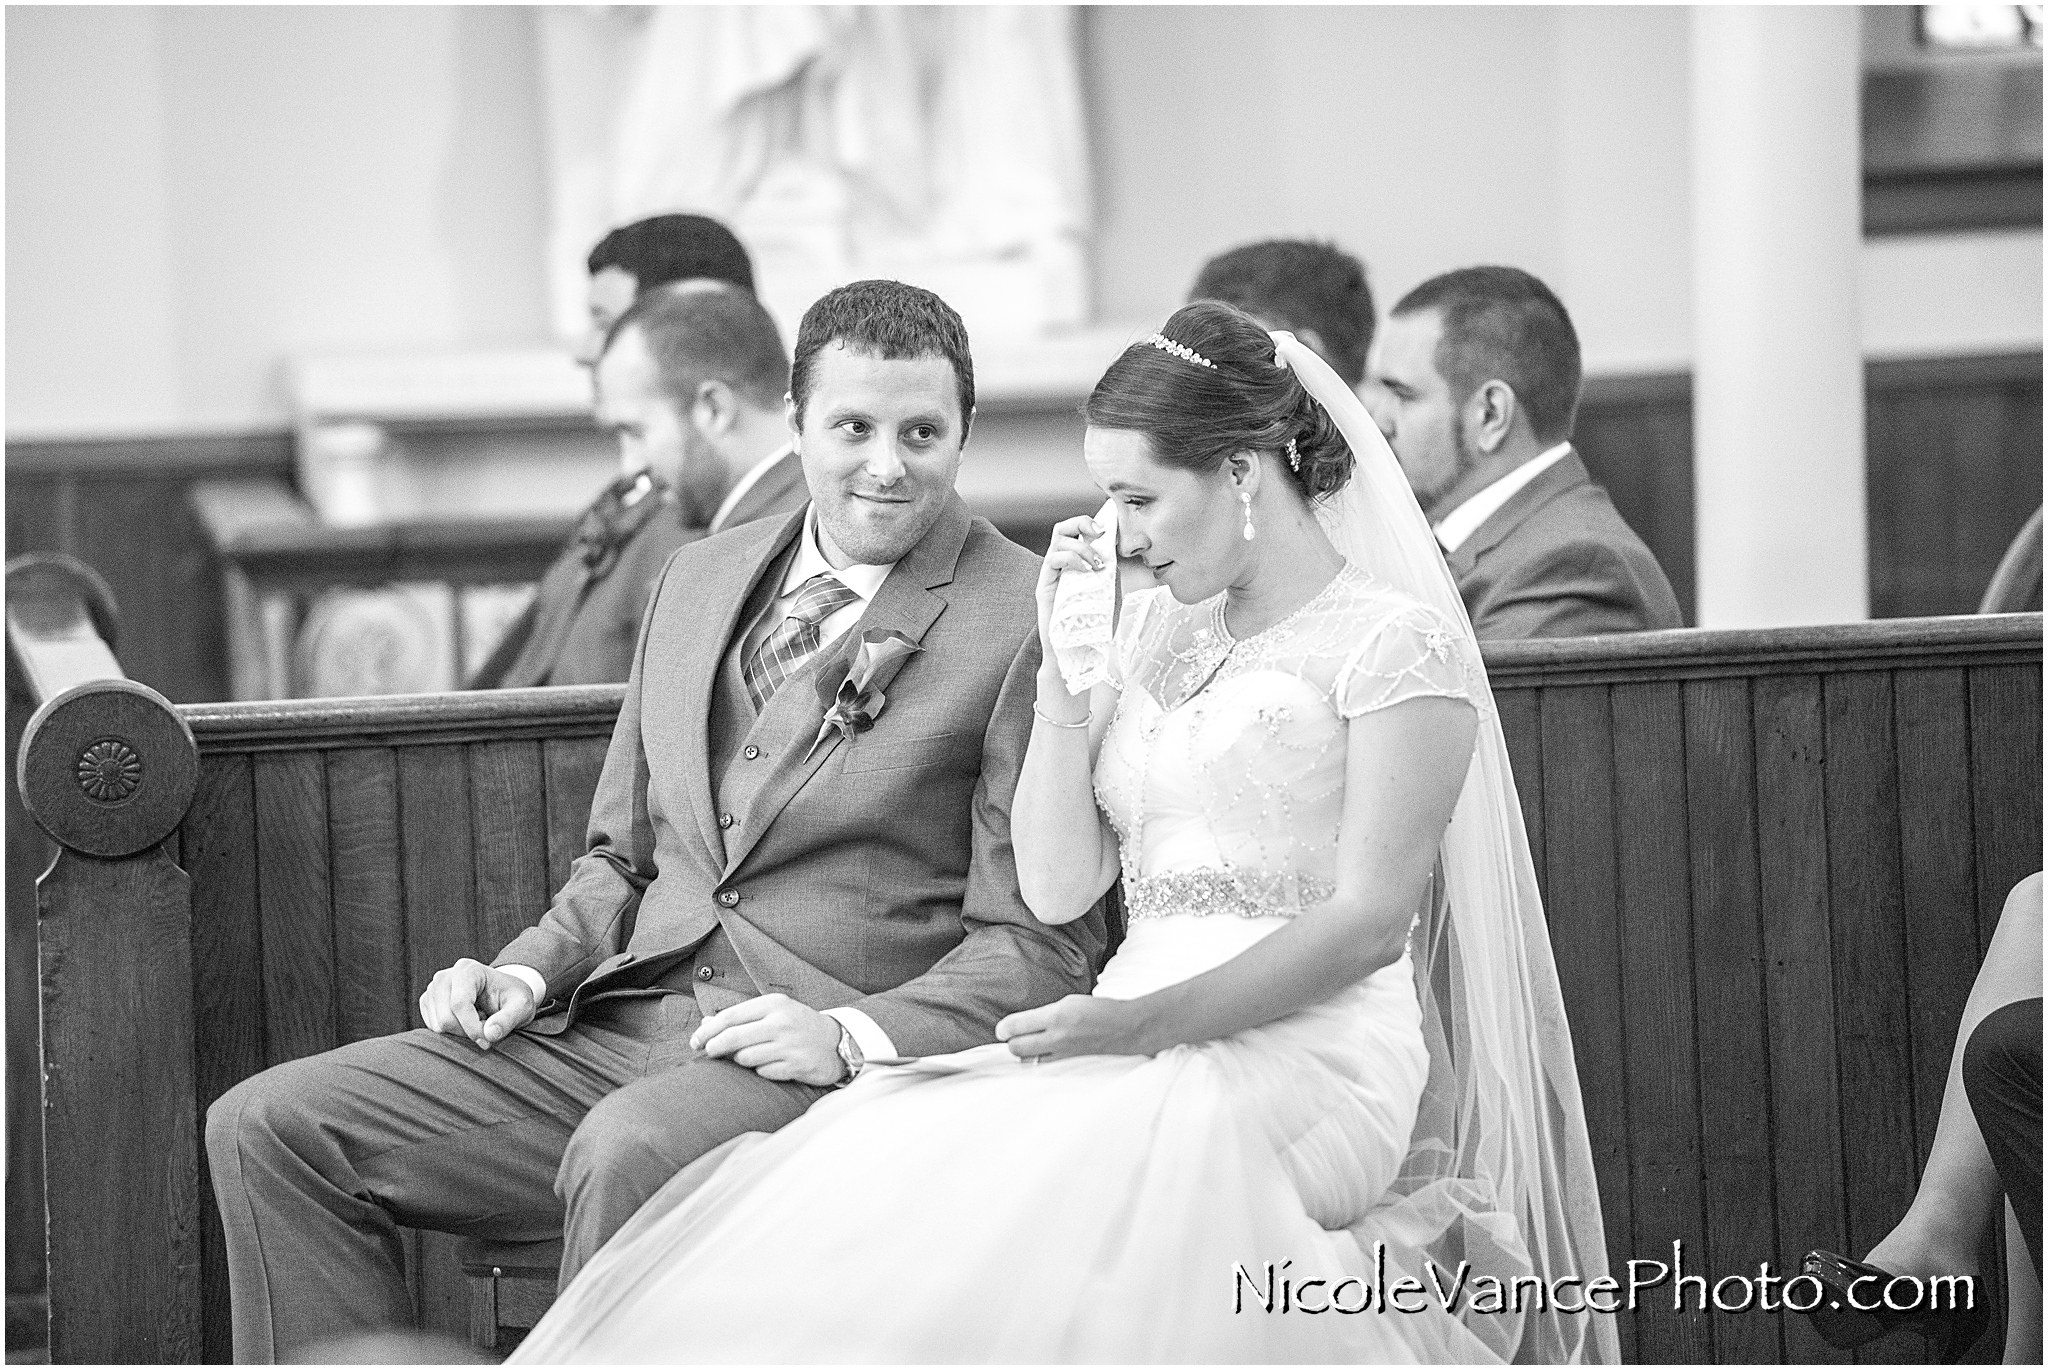 The bride and groom enjoy their wedding ceremony at St Peter's Catholic Church in Richmond, VA.